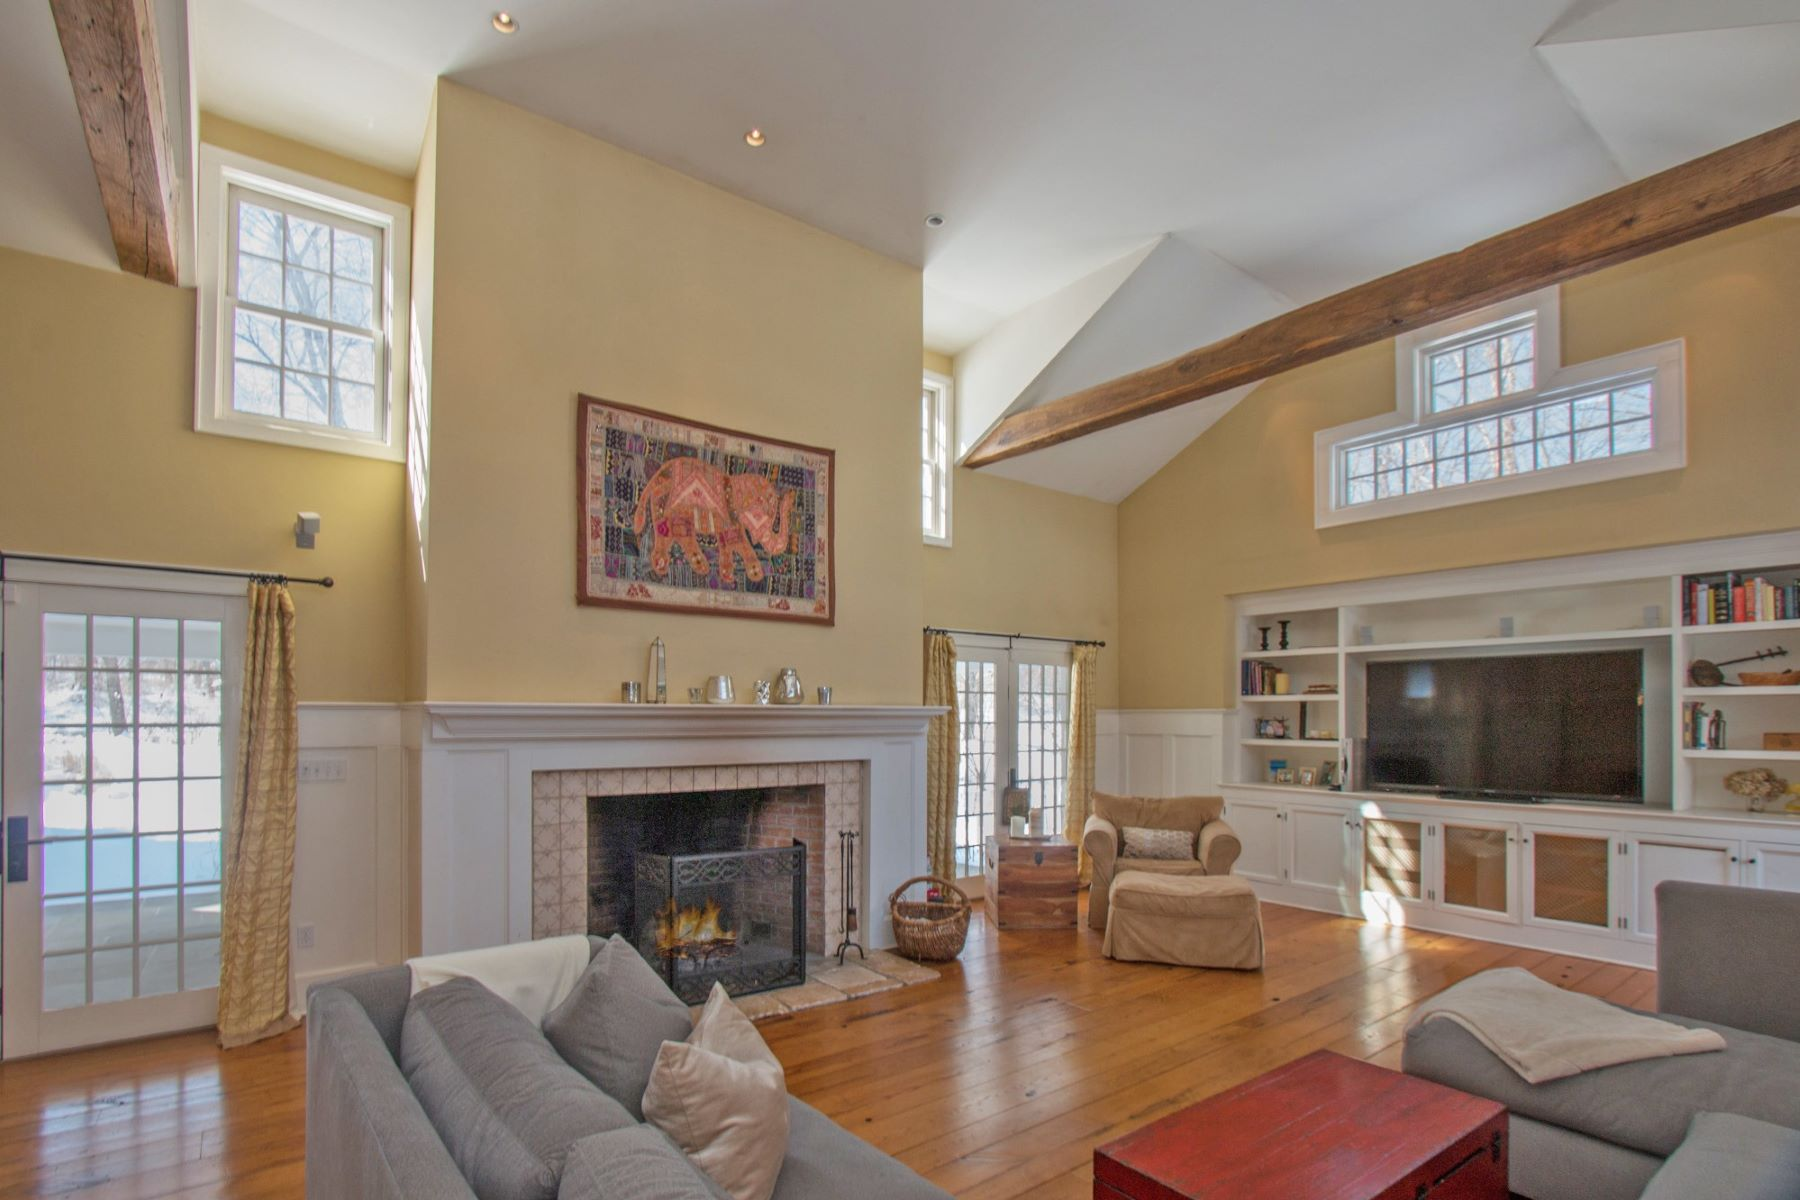 Single Family Homes for Active at 203 Ridgefield Road Wilton, Connecticut 06897 United States